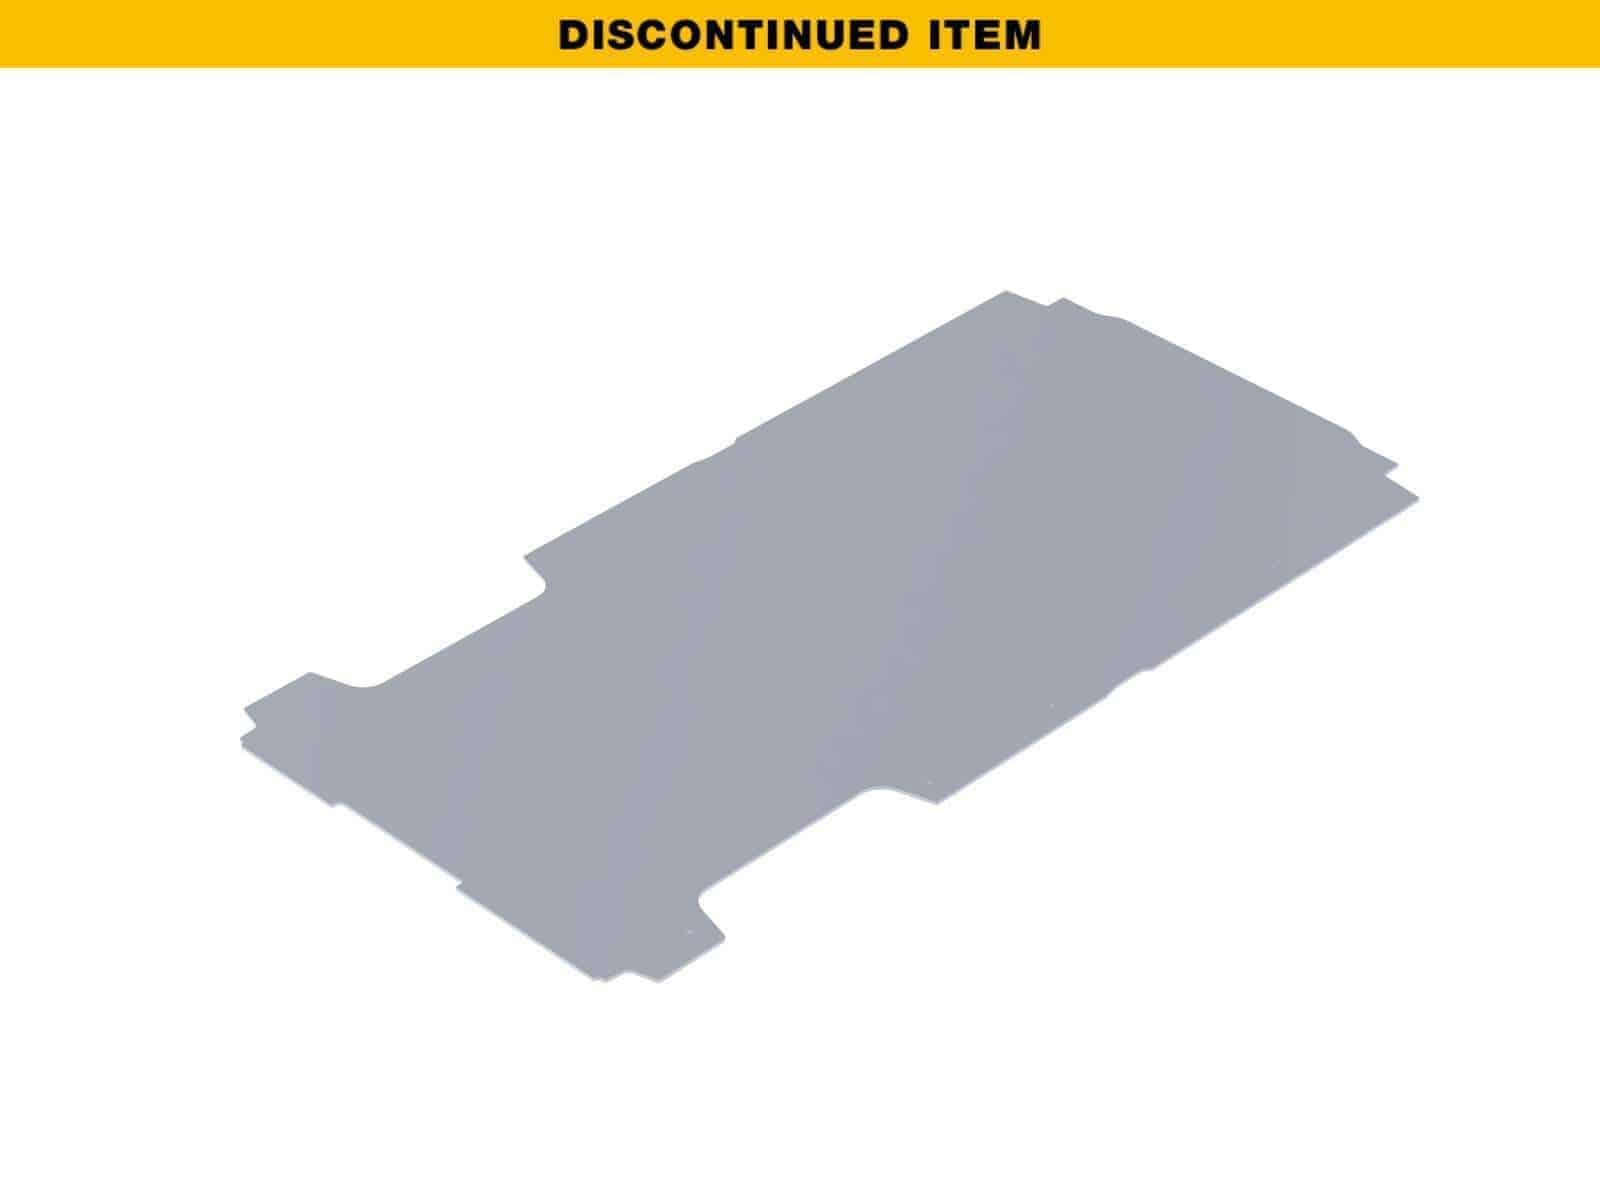 HD-Ultragrip-Van-Floor-Liner-ProMaster-159-6522-discontinued